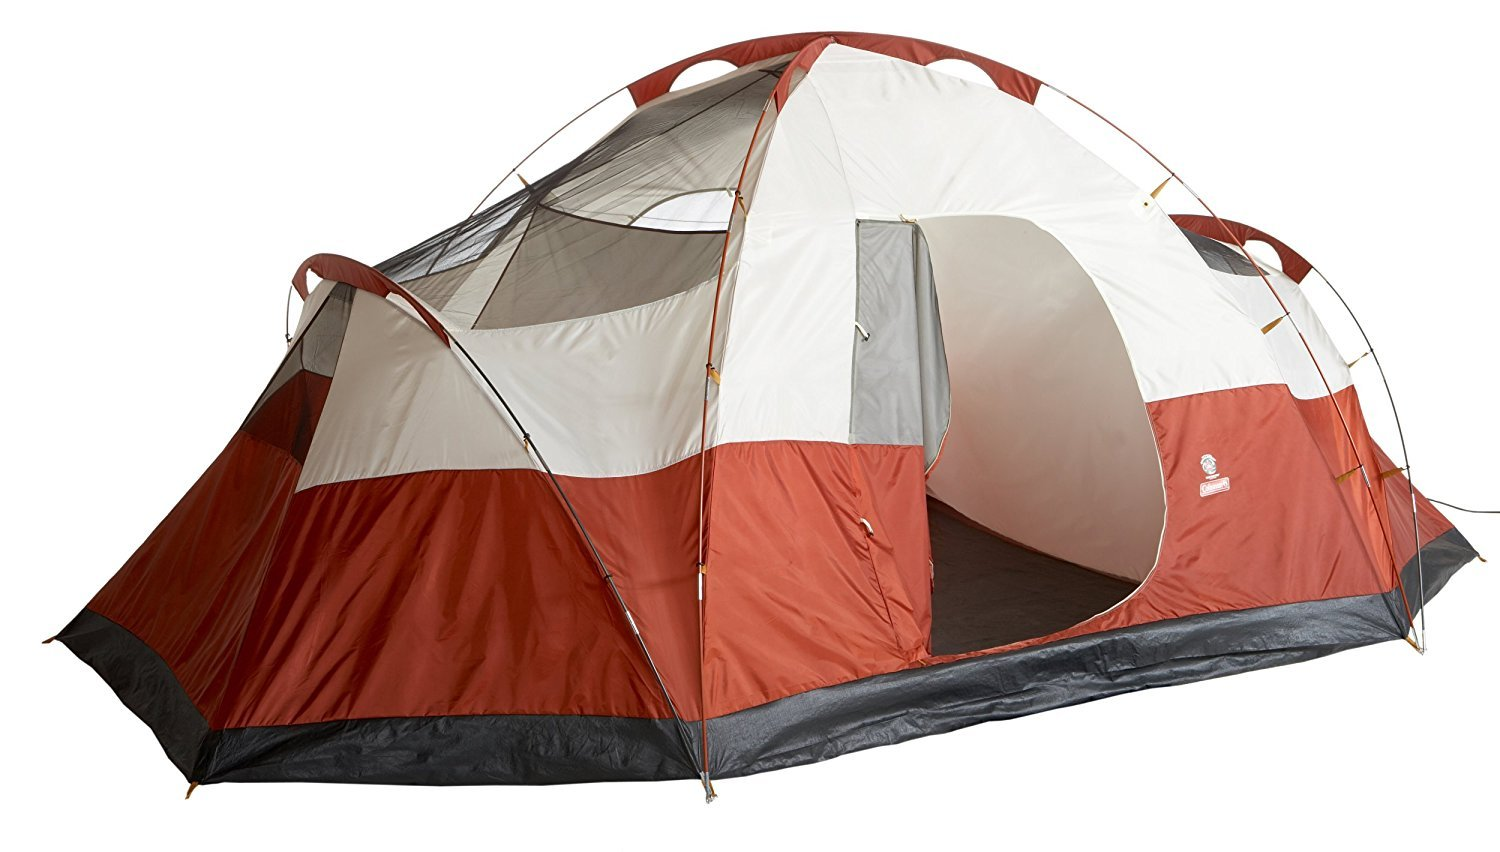 Coleman 8-Person Red Canyon Tent Review & Specifications 2019